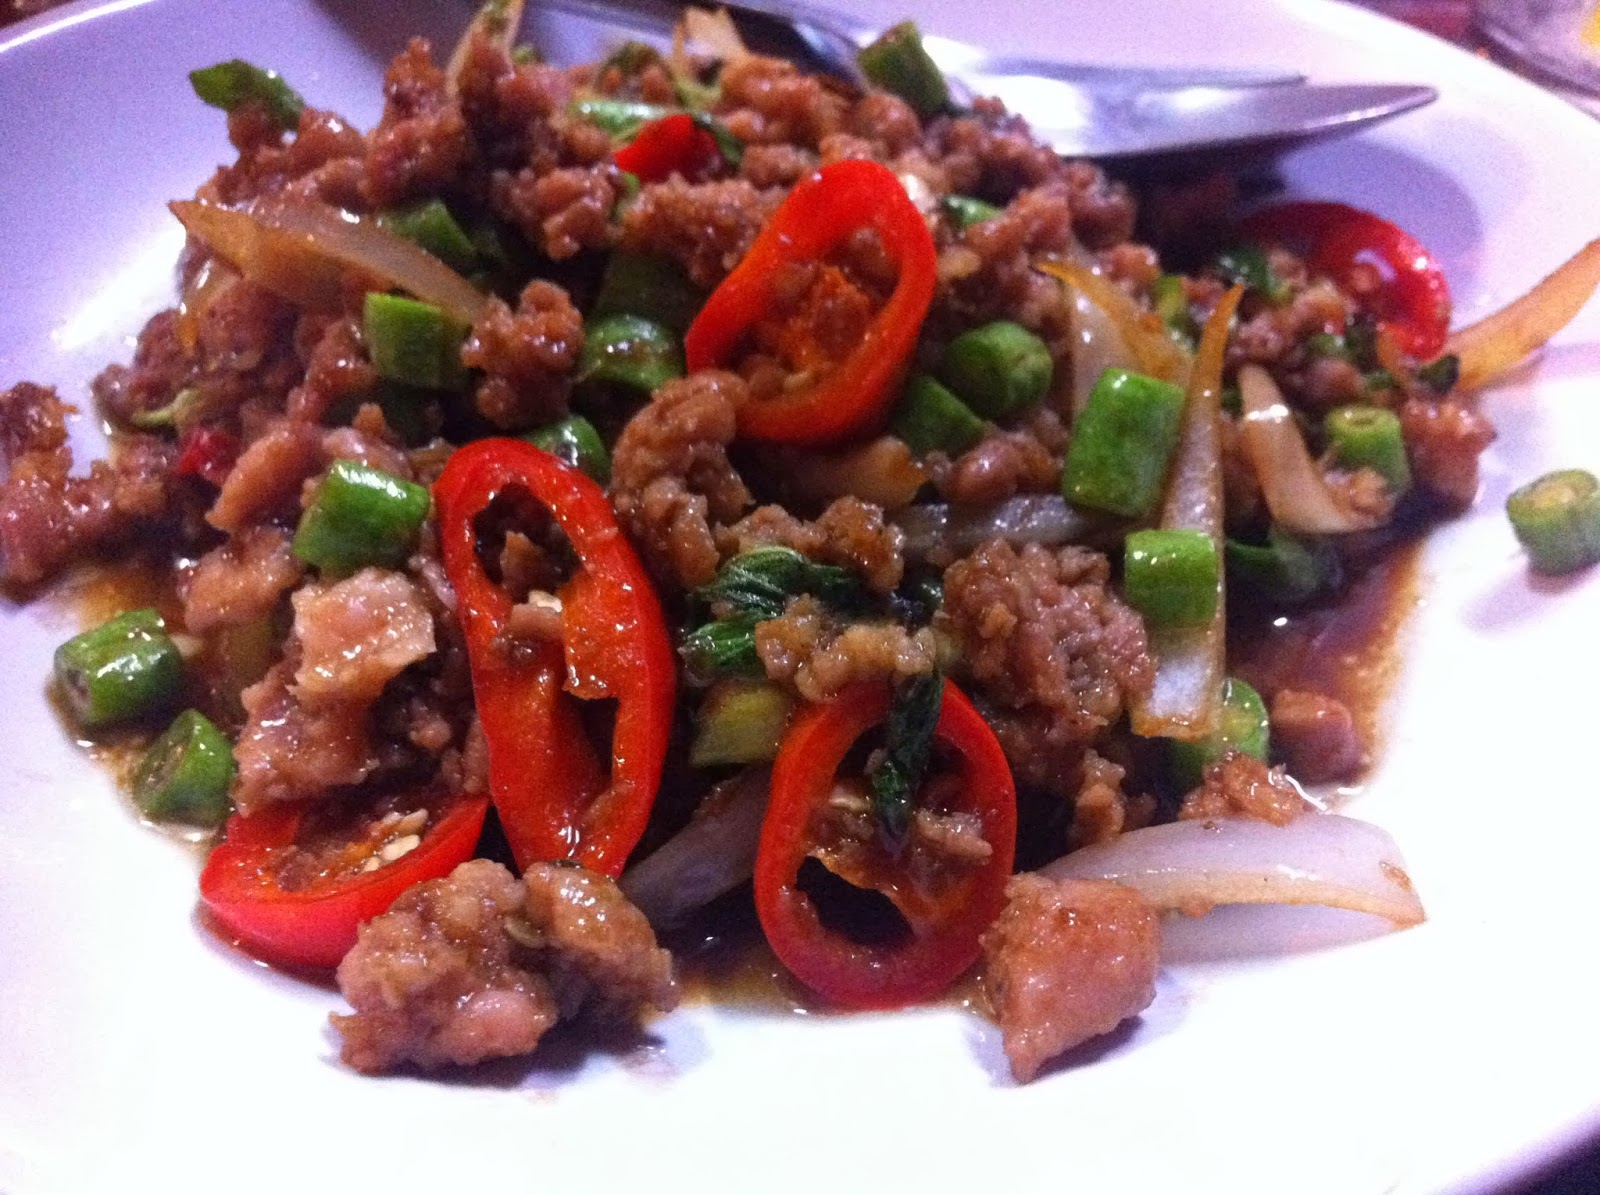 Ground pork, Bangkok, Thailand